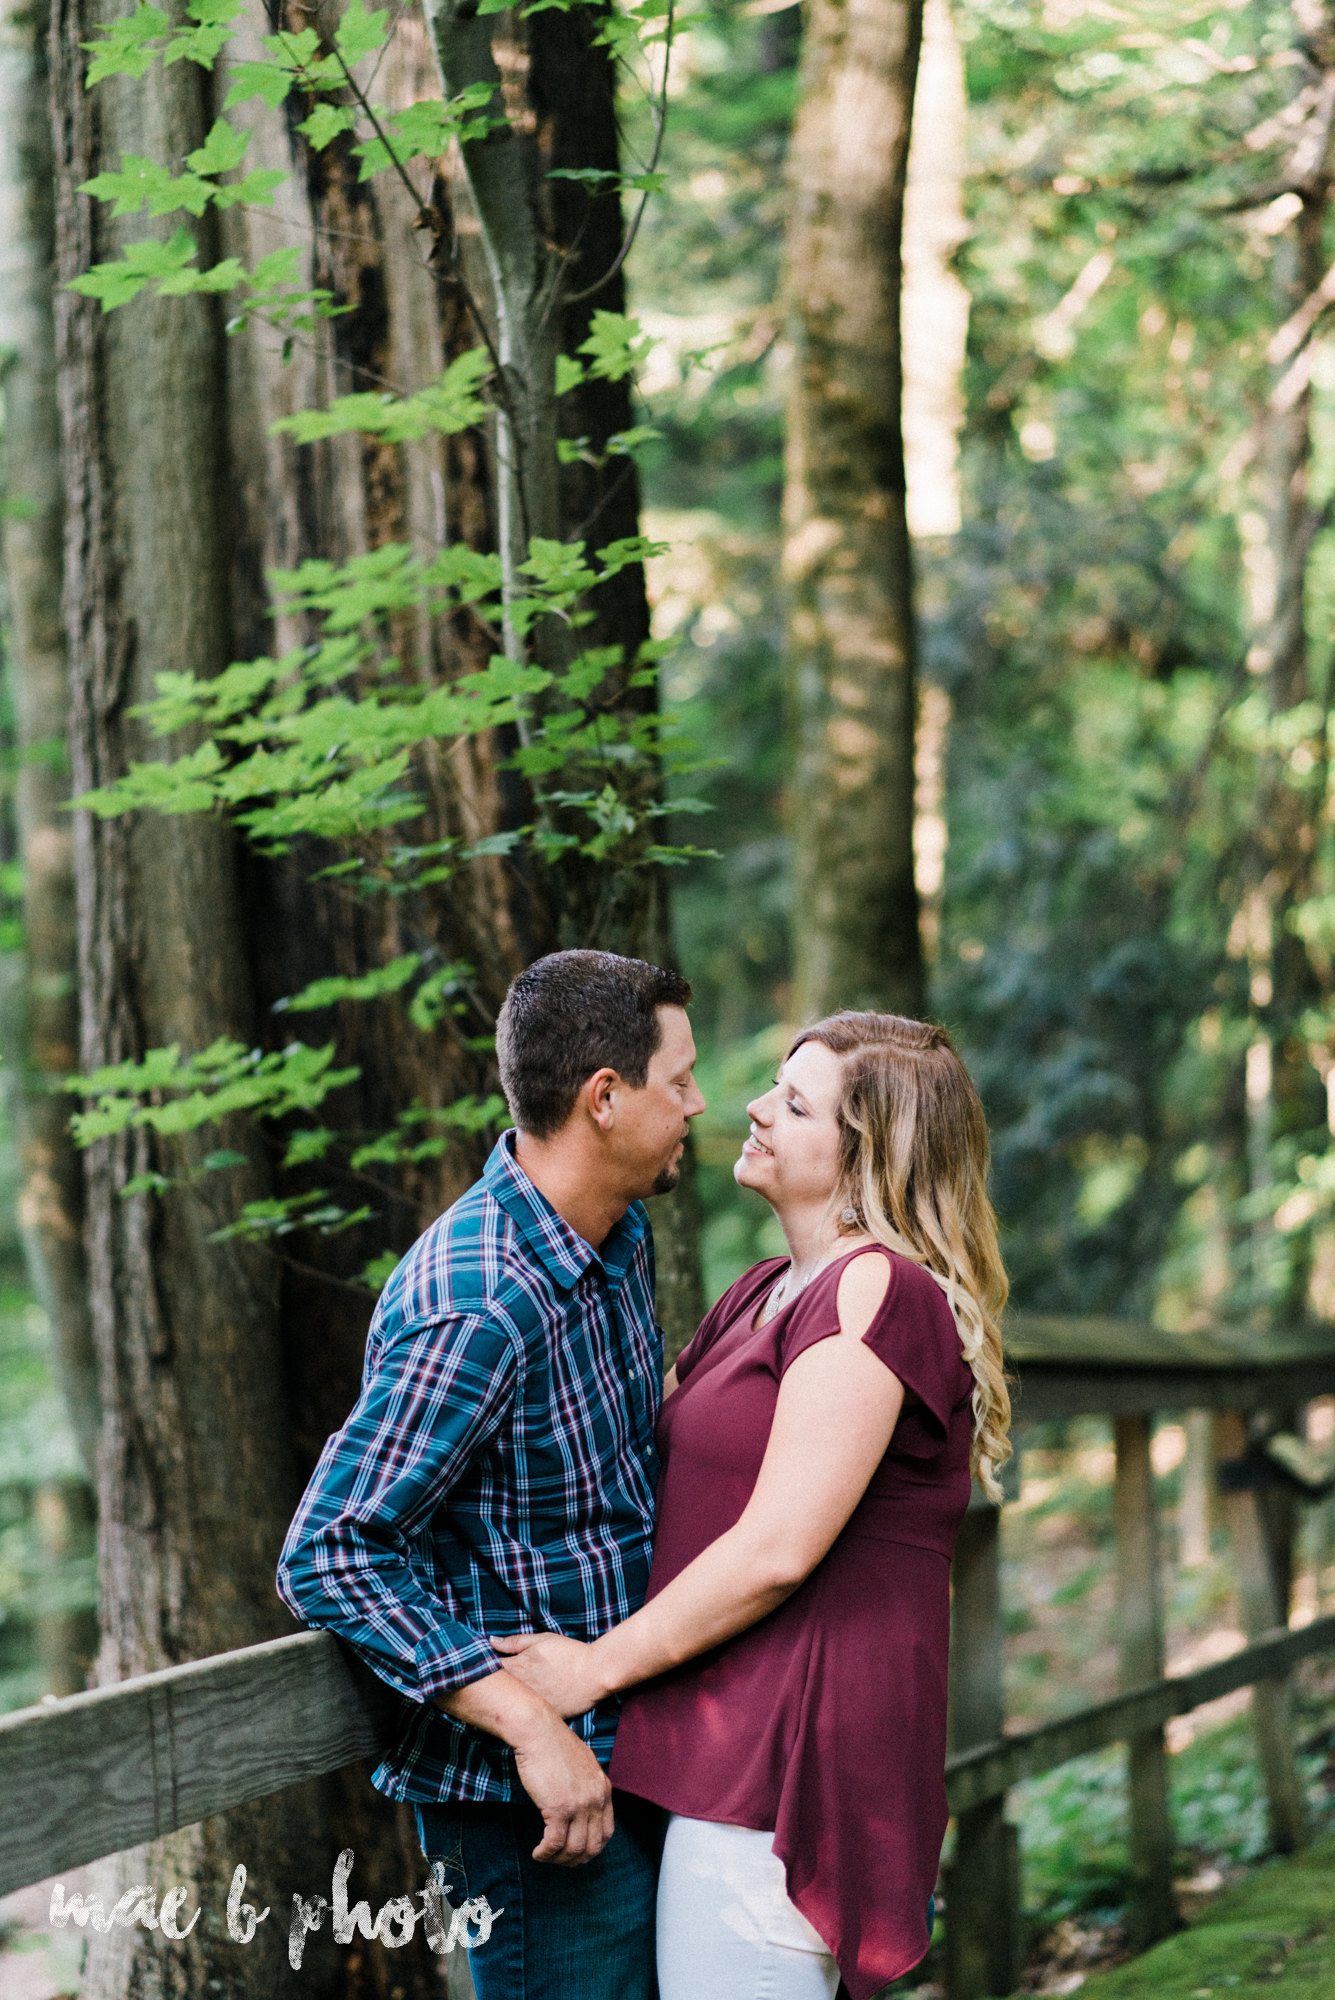 becca and rich's woodsy summer engagement session at ford nature center in mill creek park in youngstown ohio photographed by cleveland wedding photographer mae b photo-2.jpg